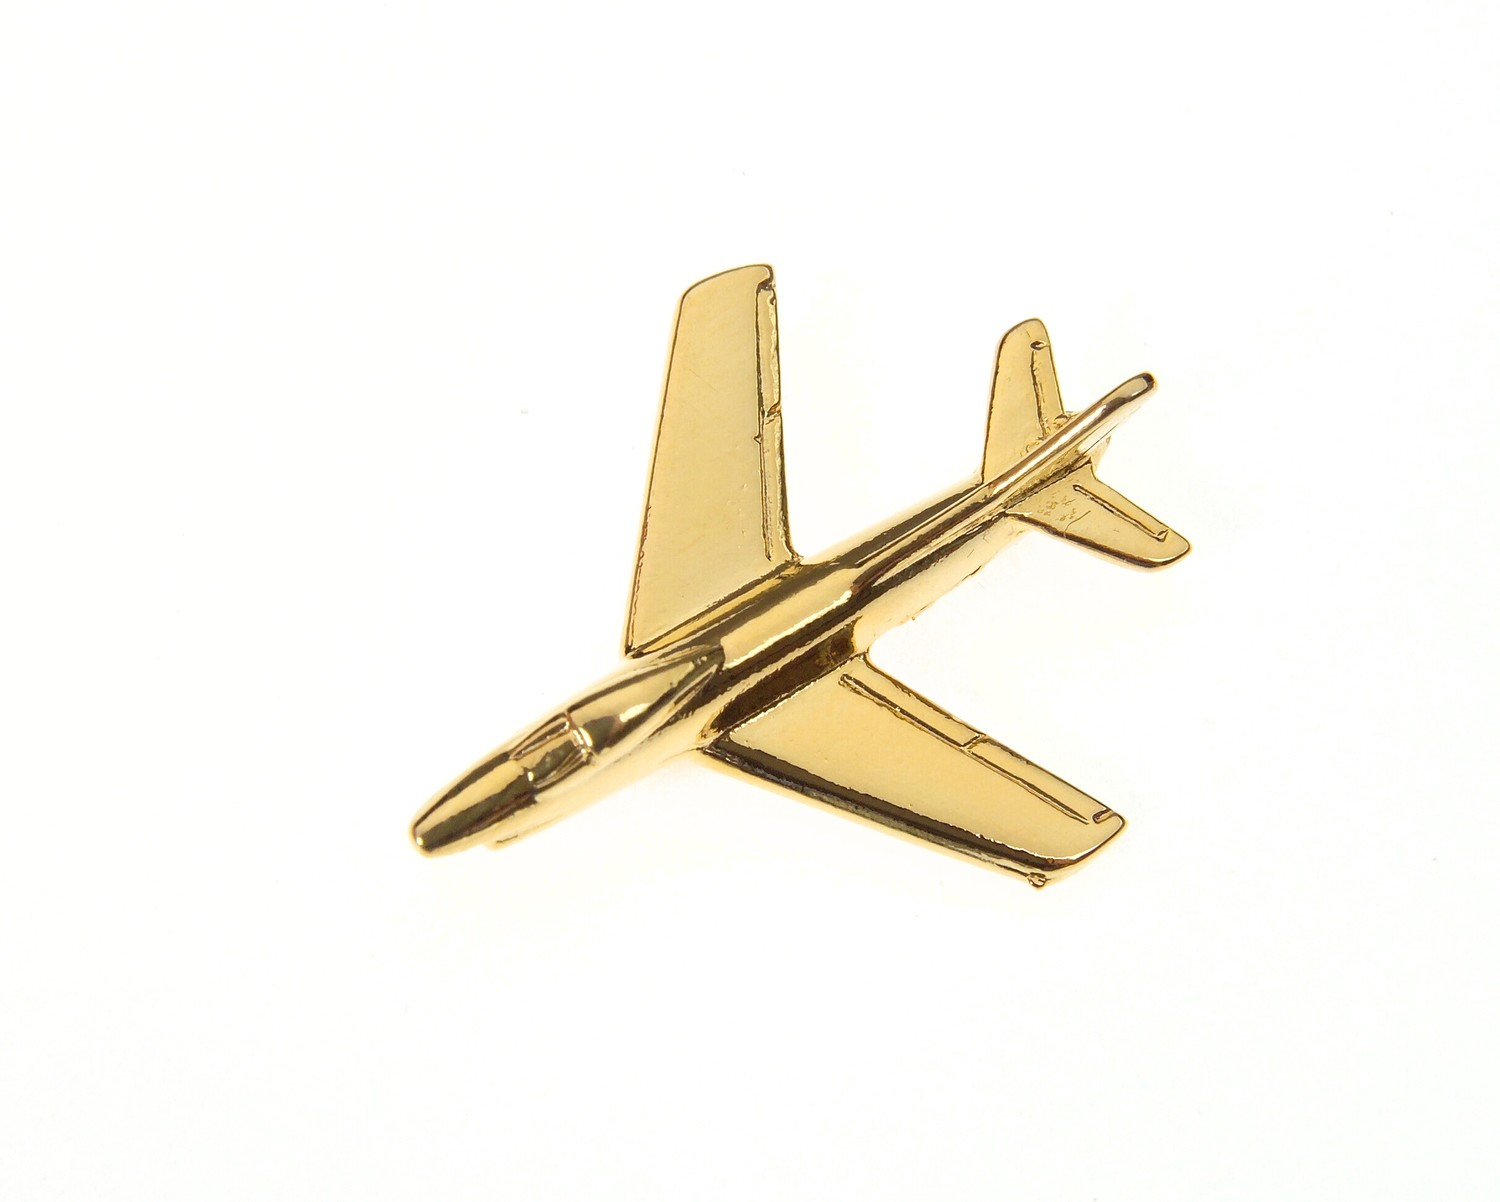 Fiat G91 Gold Plated Tie / Lapel Pin